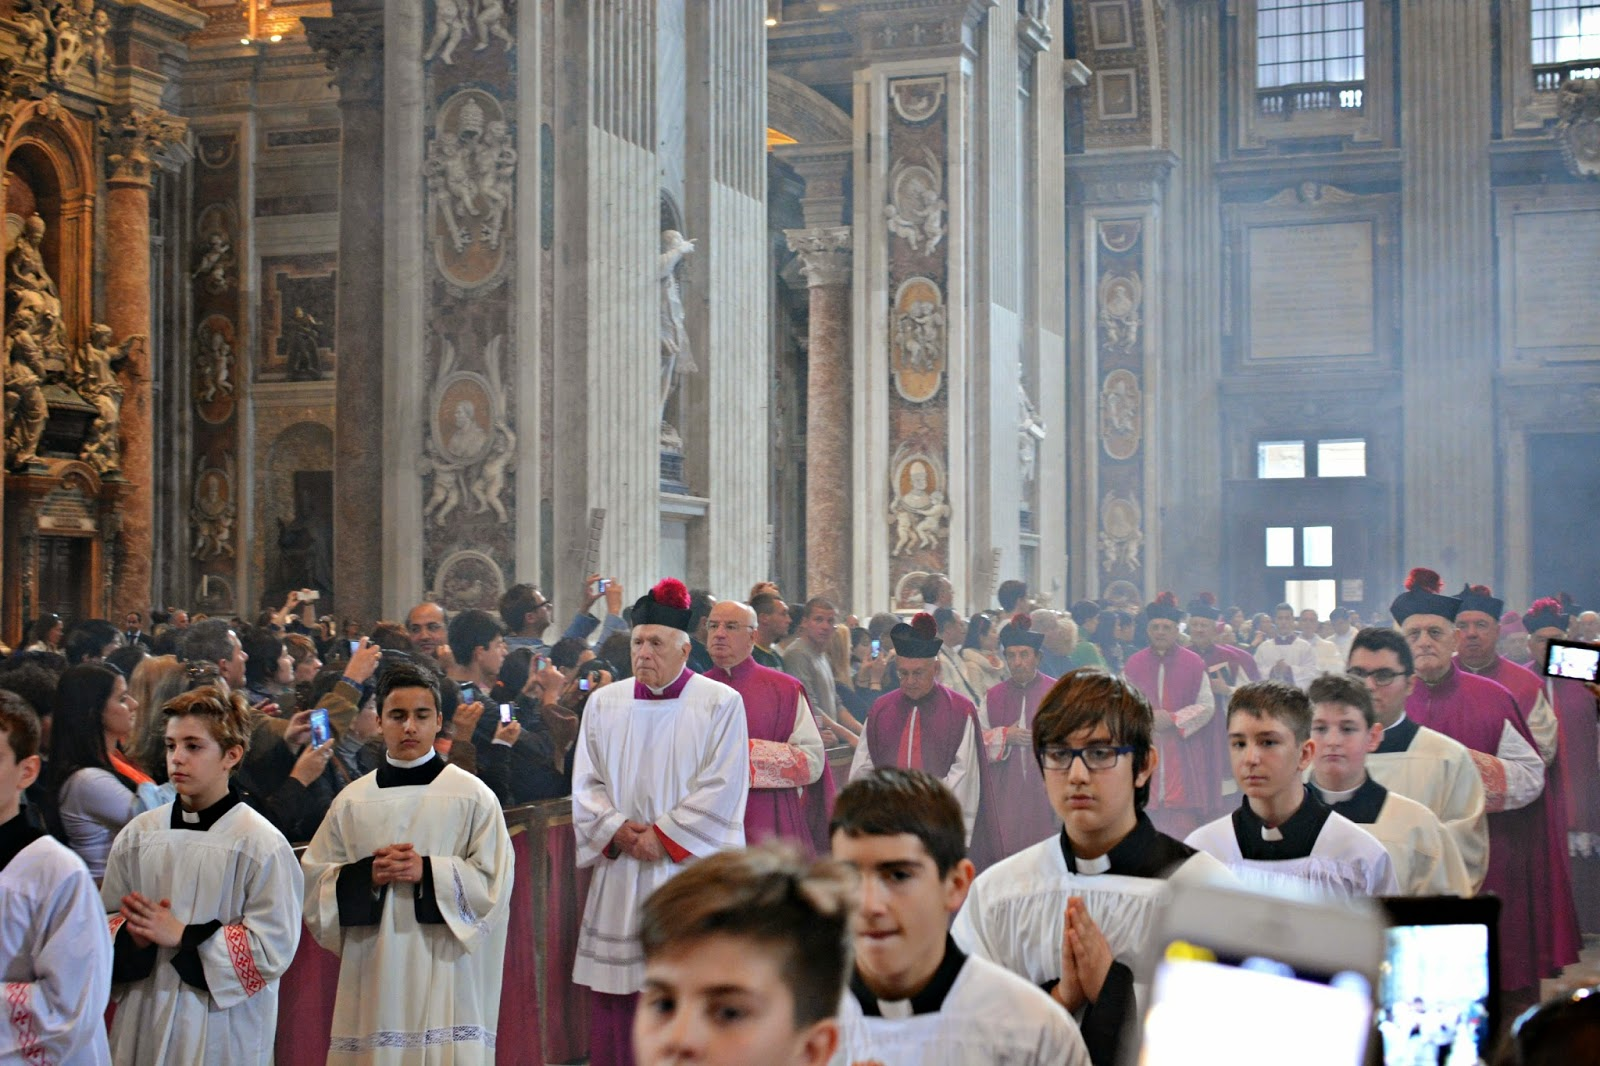 mass at st peter's basilica vatican city